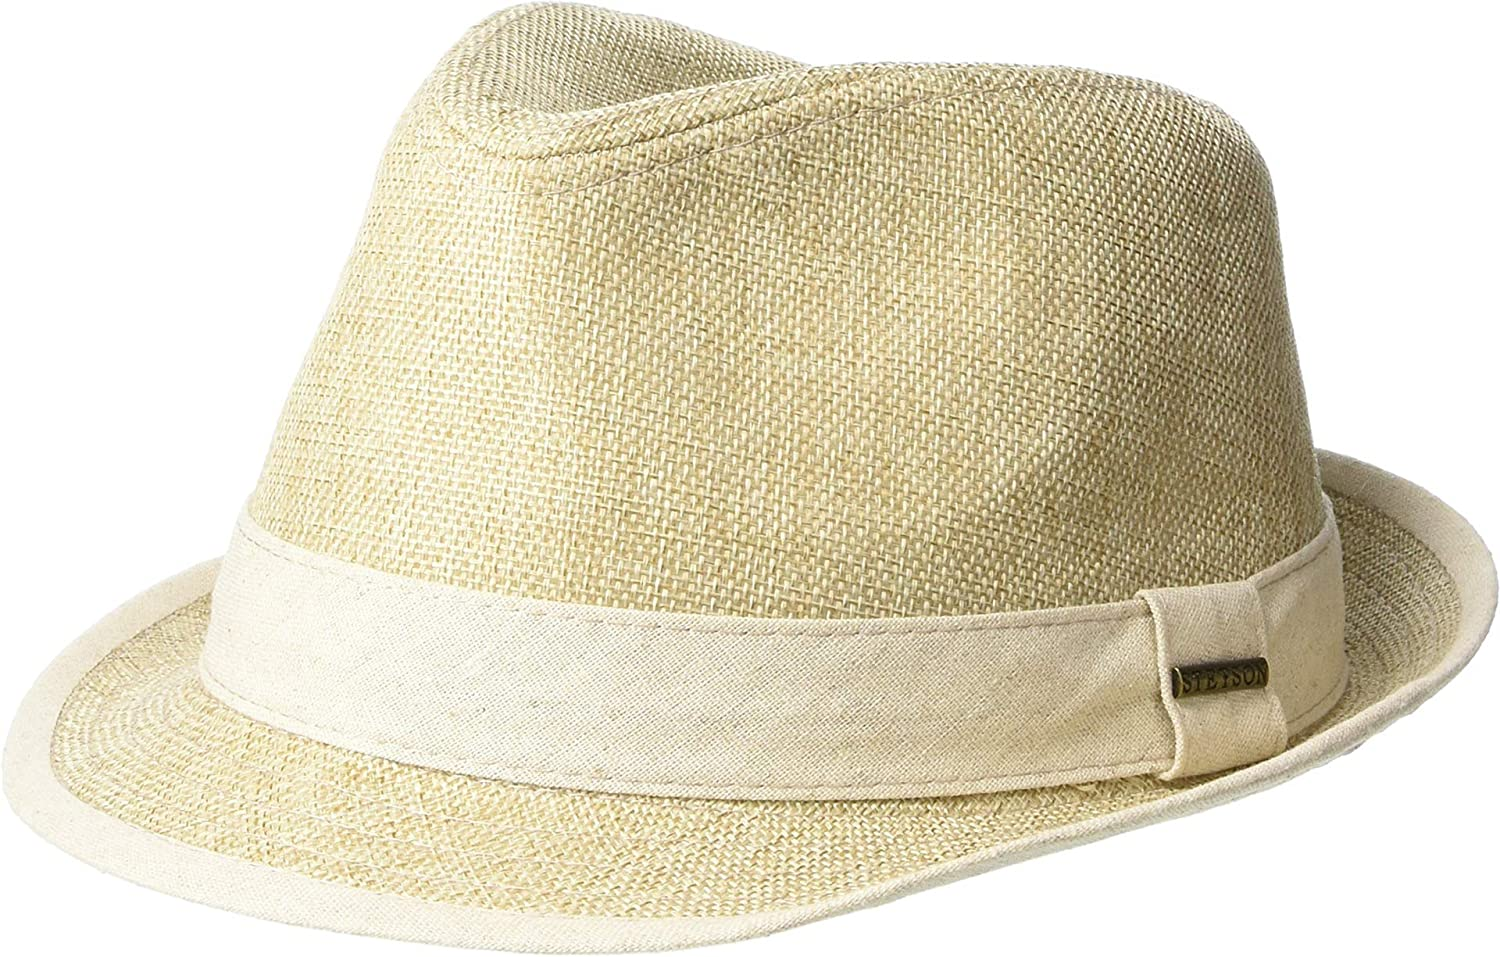 1b44023a4d940 Stetson Men s Polyester Fedora Tan LG at Amazon Men s Clothing store